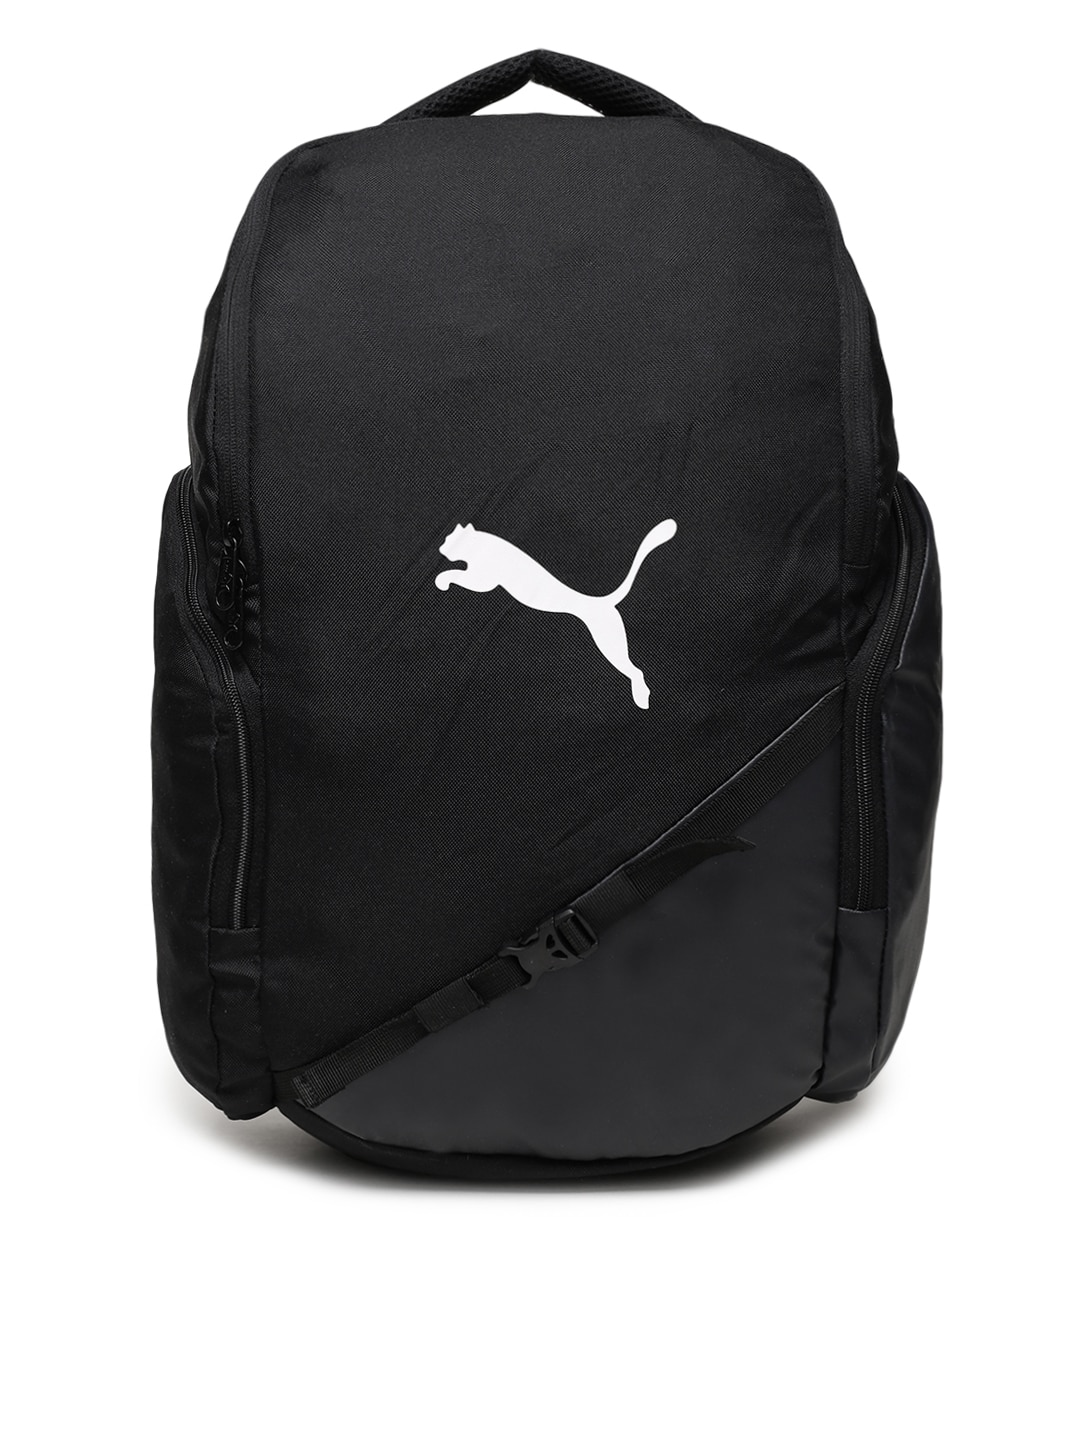 Puma Bags For Men - Buy Men s Puma Bags Online from Myntra c488e3b699